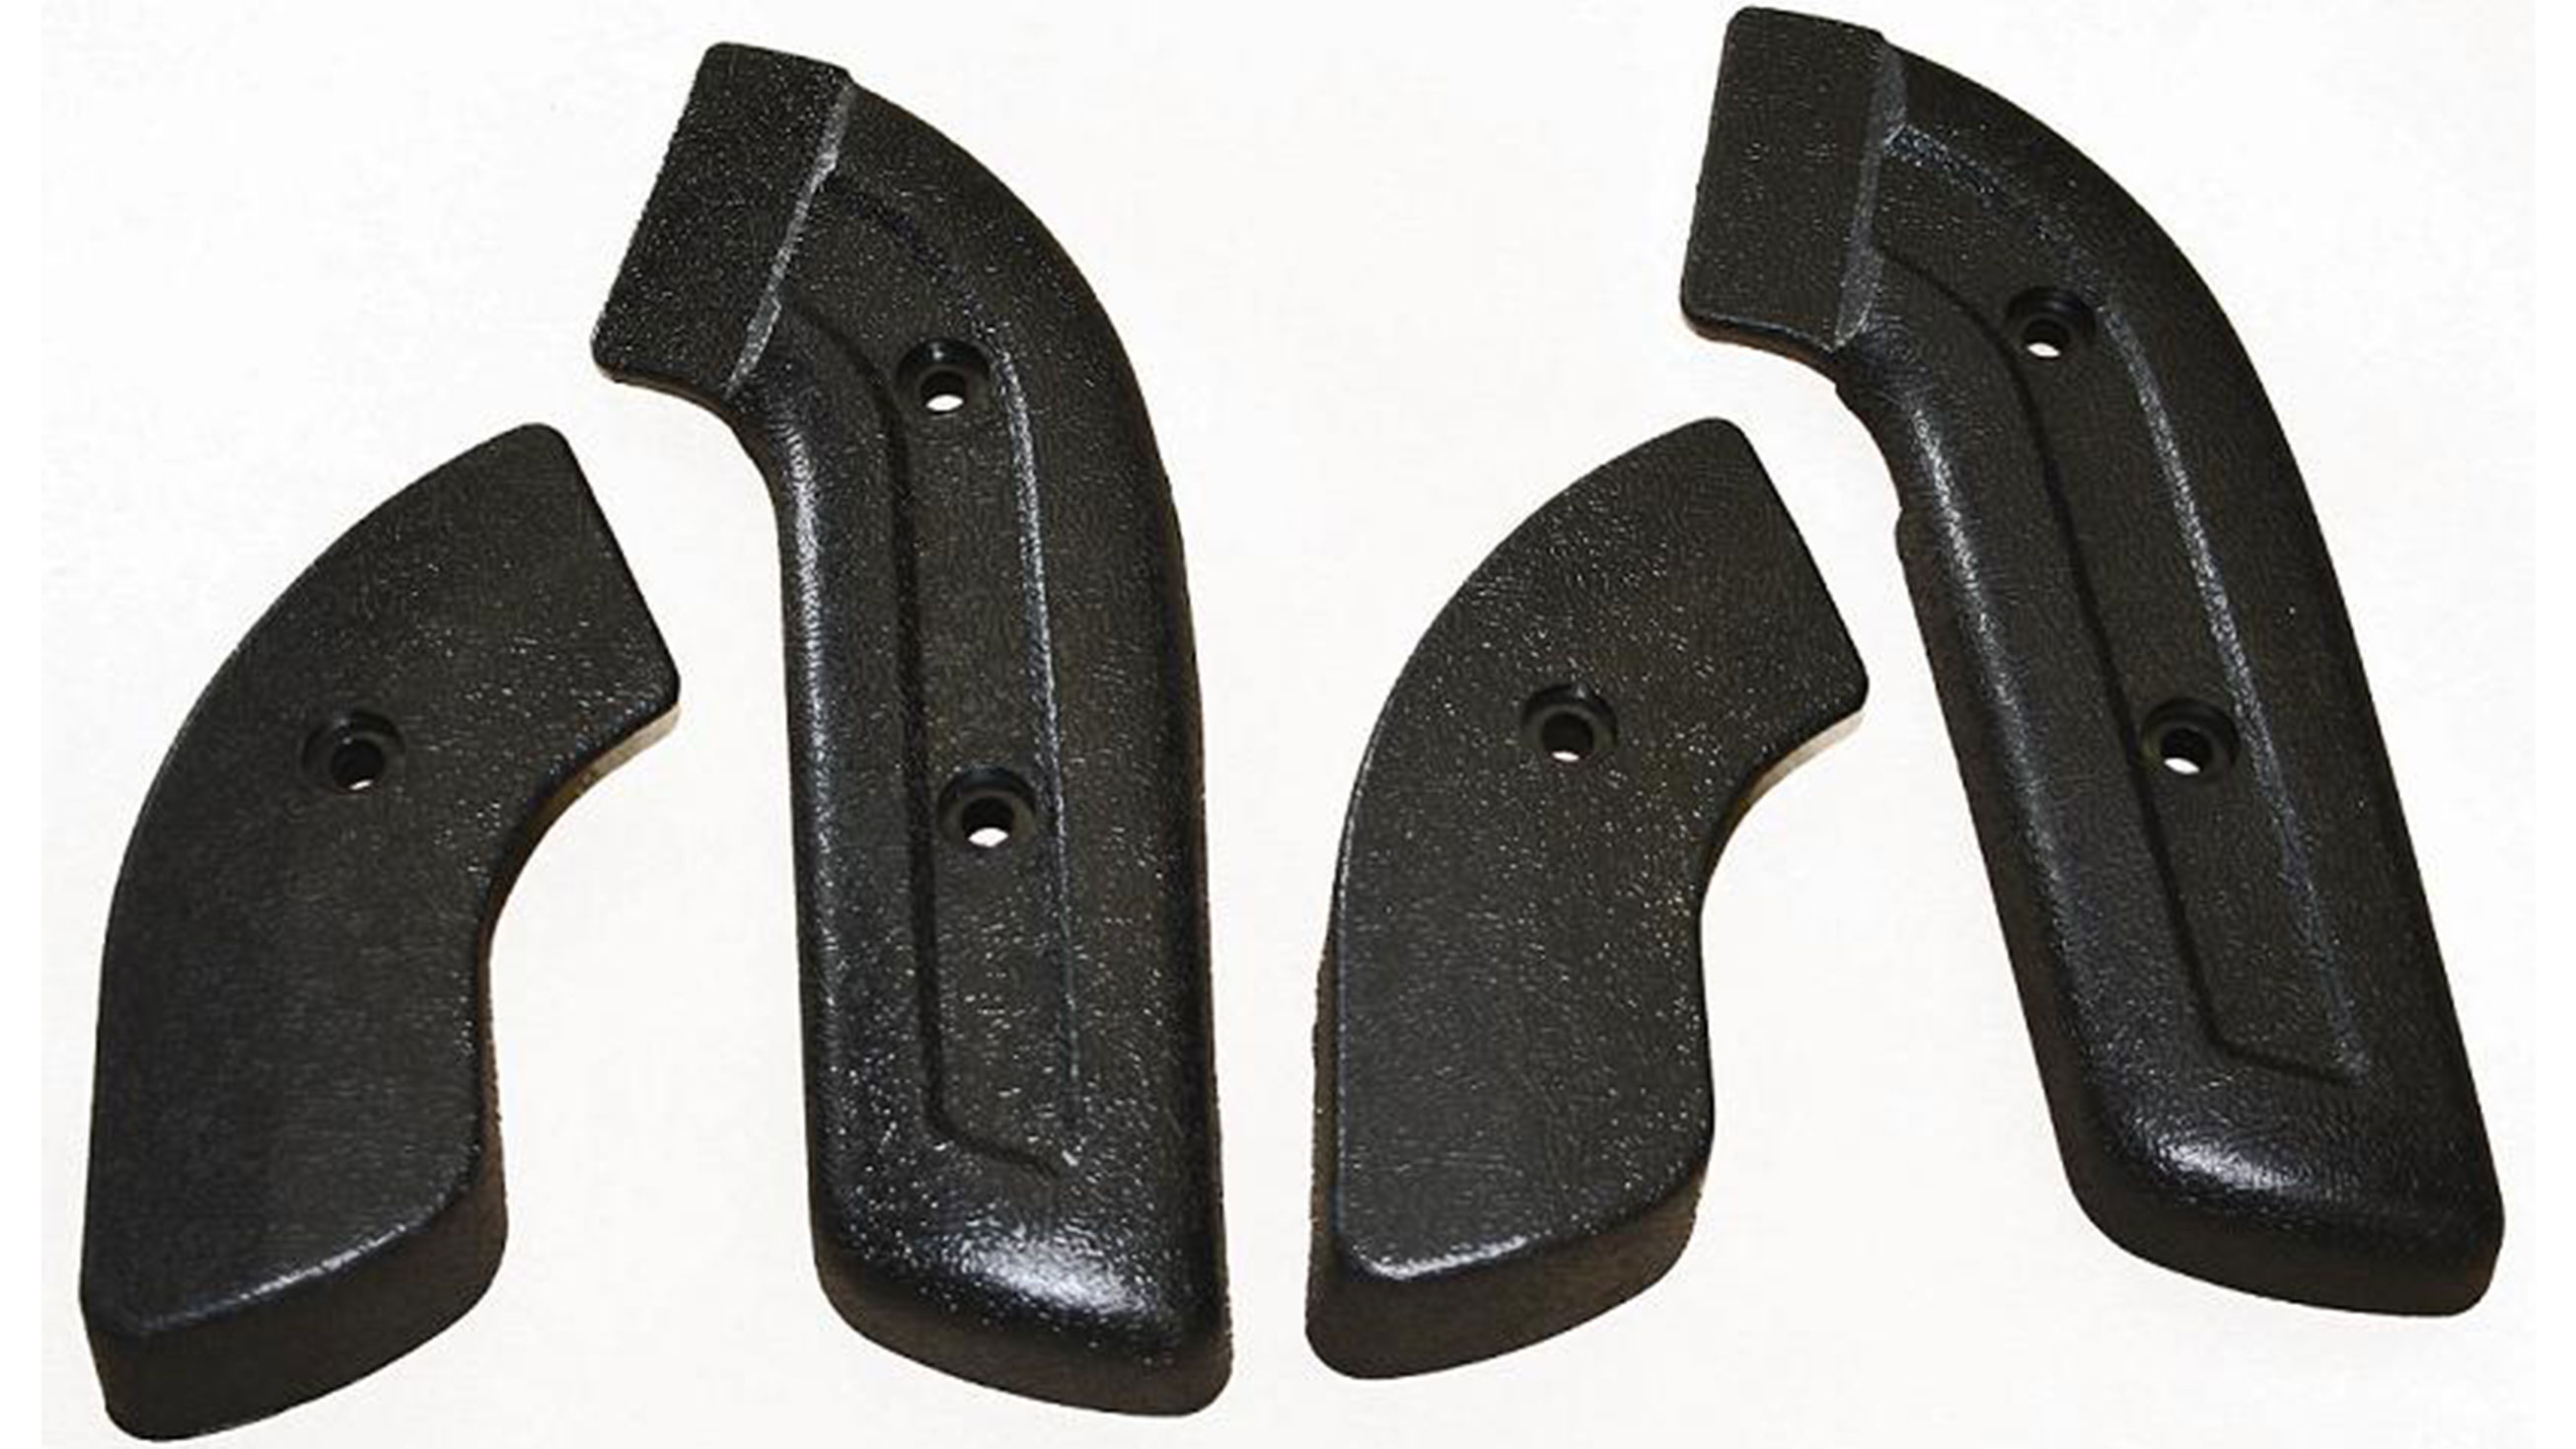 Front Bucket Seat Hinge Covers - Black, Full Set, 66-77 Ford Bronco, New